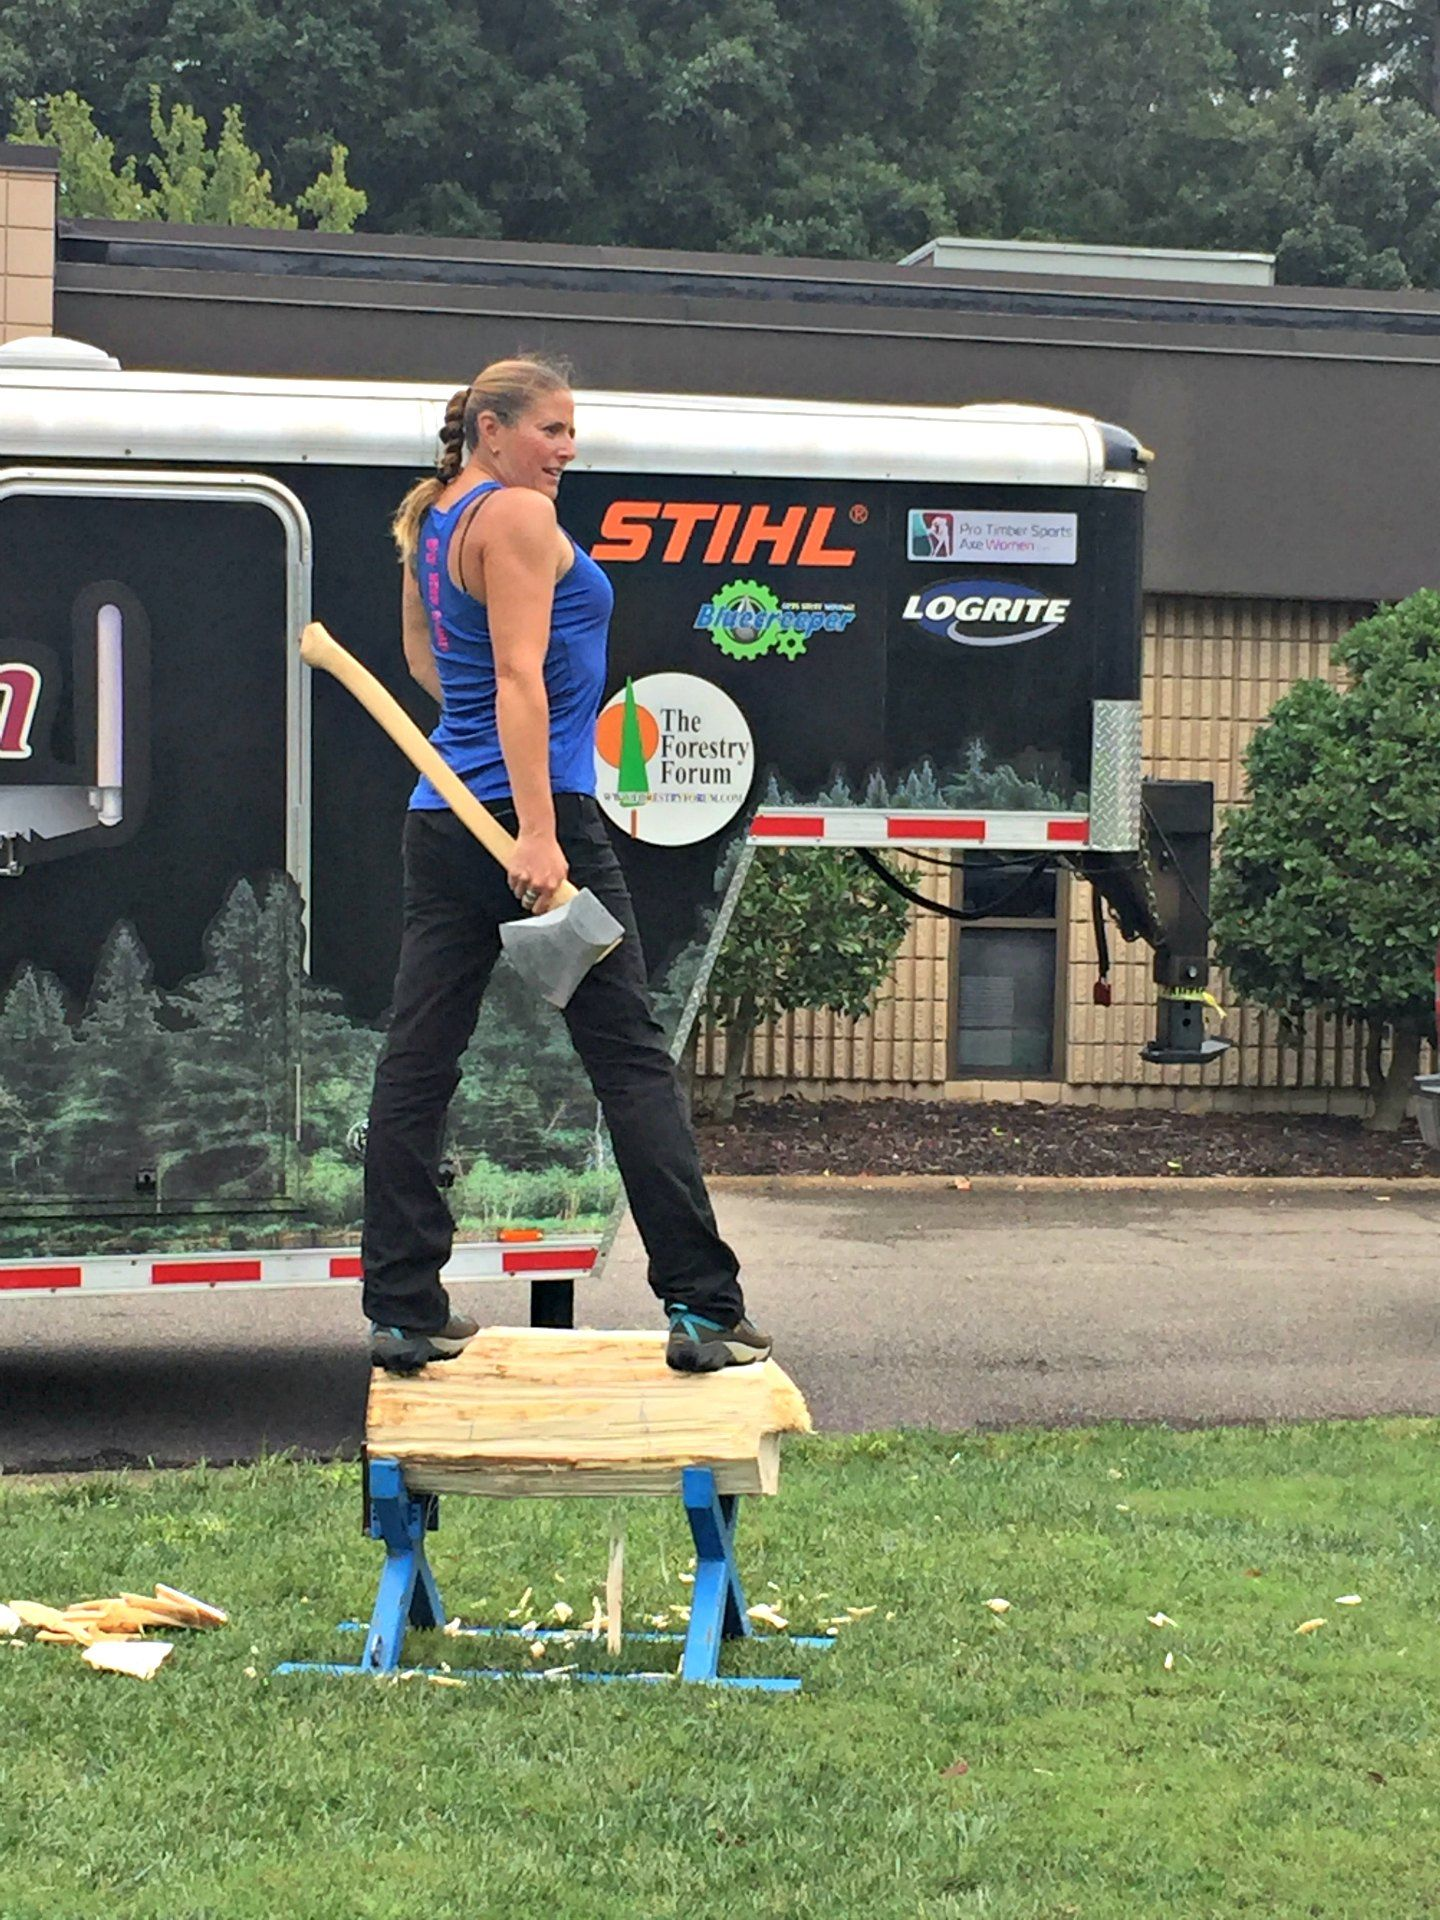 Chainsaws, Power Carving, and Throwing Axes | Stihl Chain Saws and